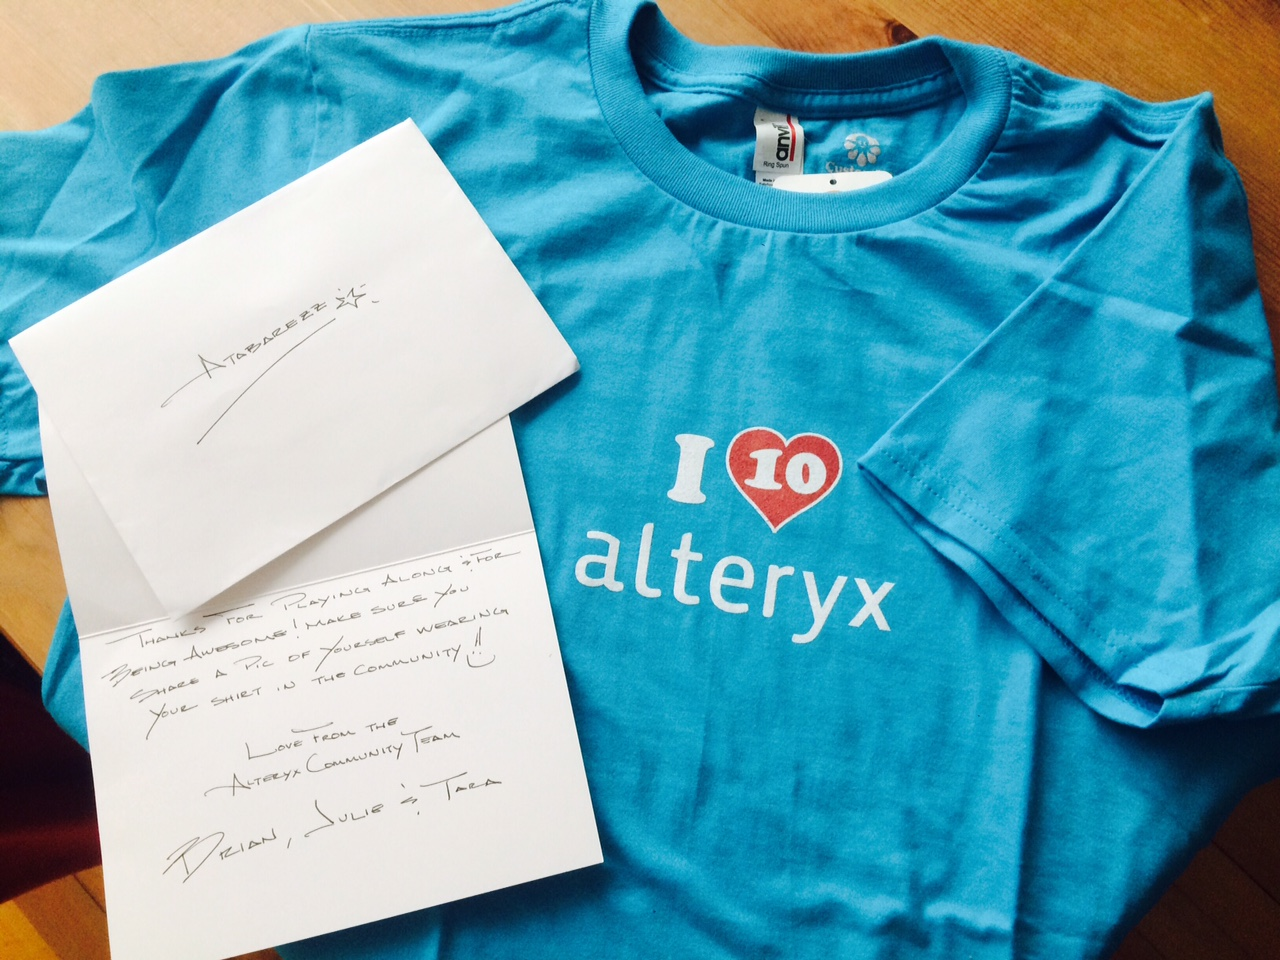 Alteryx Message.jpg